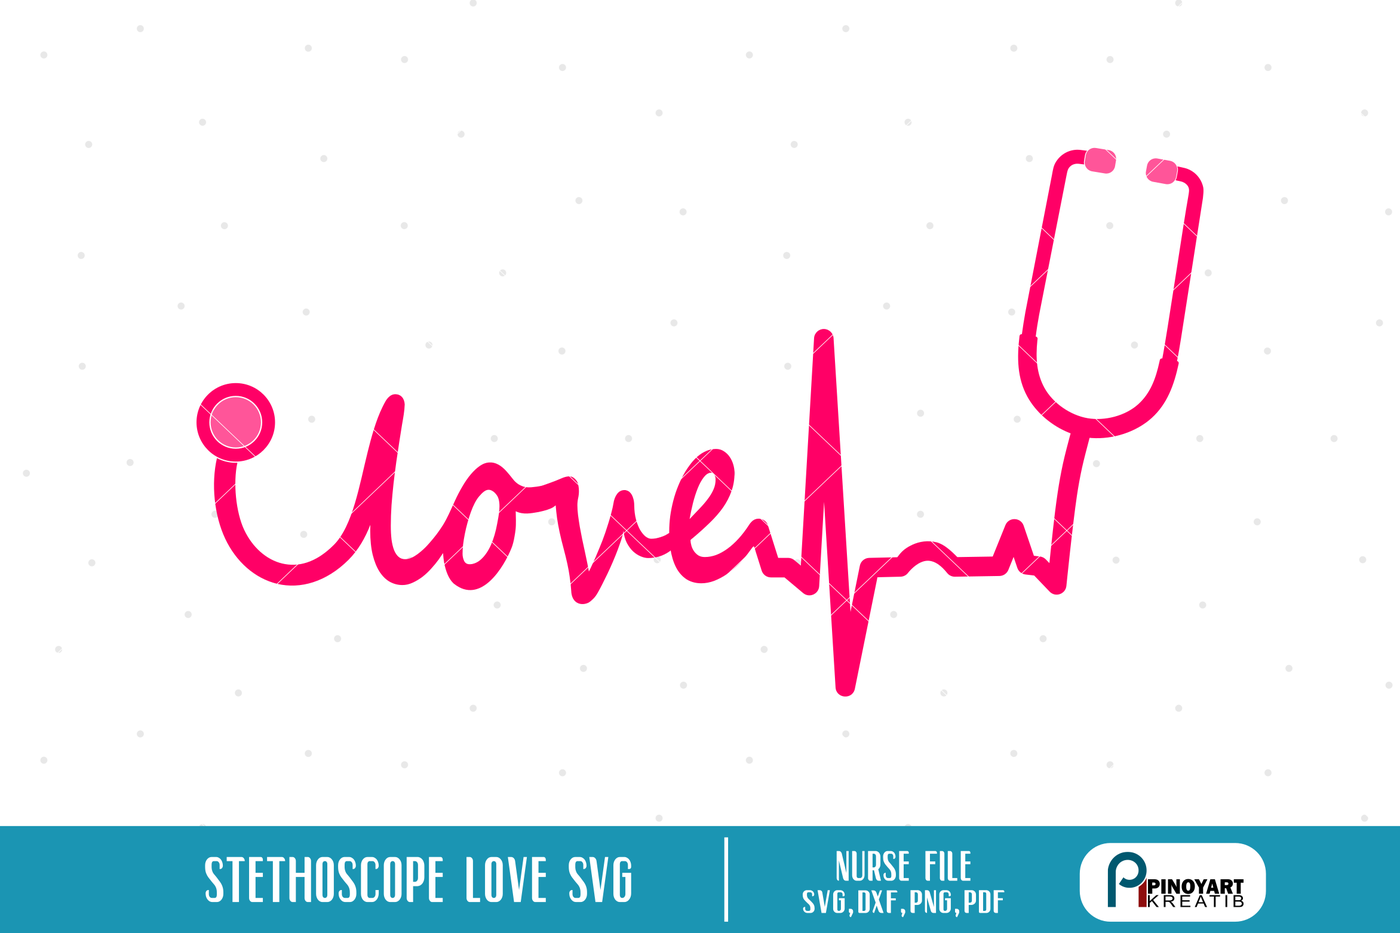 Nurse Svg Nurse Svg File Nurse Dxf Nurse Dxf File Doctor Svg Love